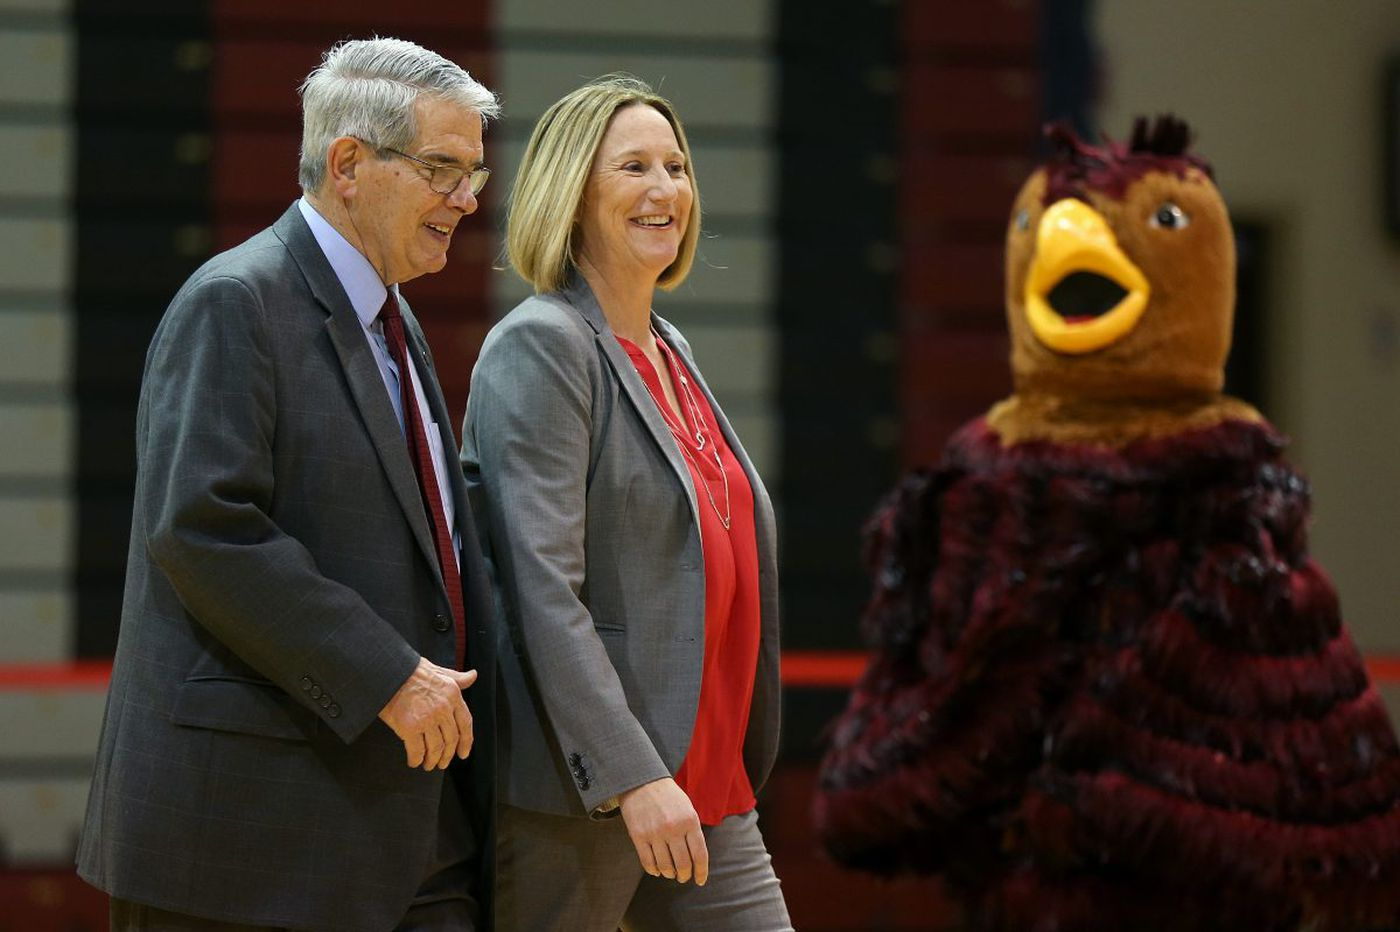 New St. Joseph's athletic director Jill Bodensteiner gets strong backing from Phil Martelli, Don DiJulia